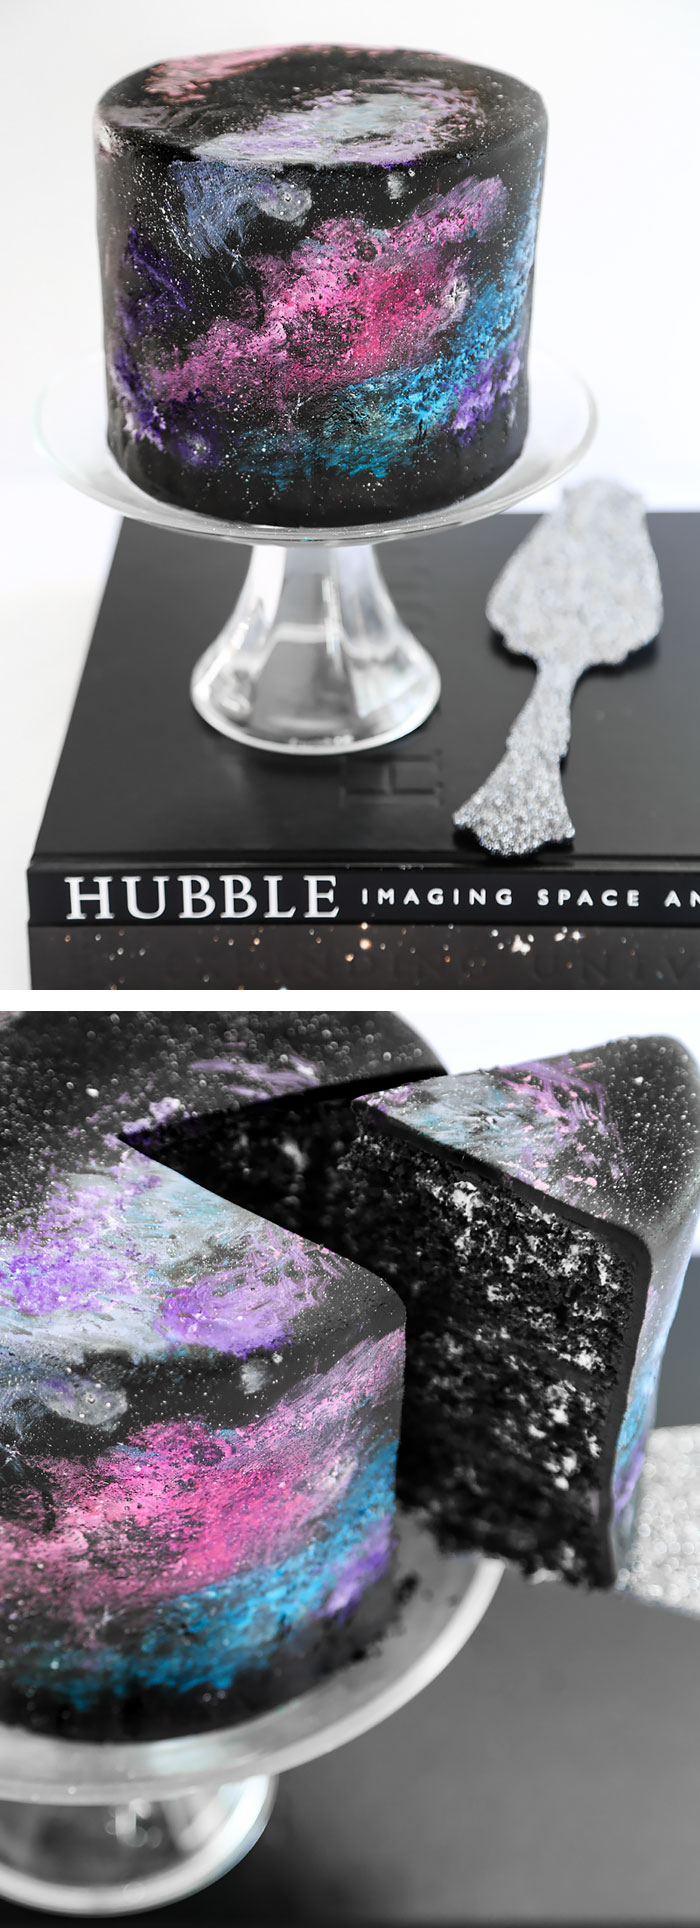 galaxy-cakes-space-sweets-cosmos-treats-5